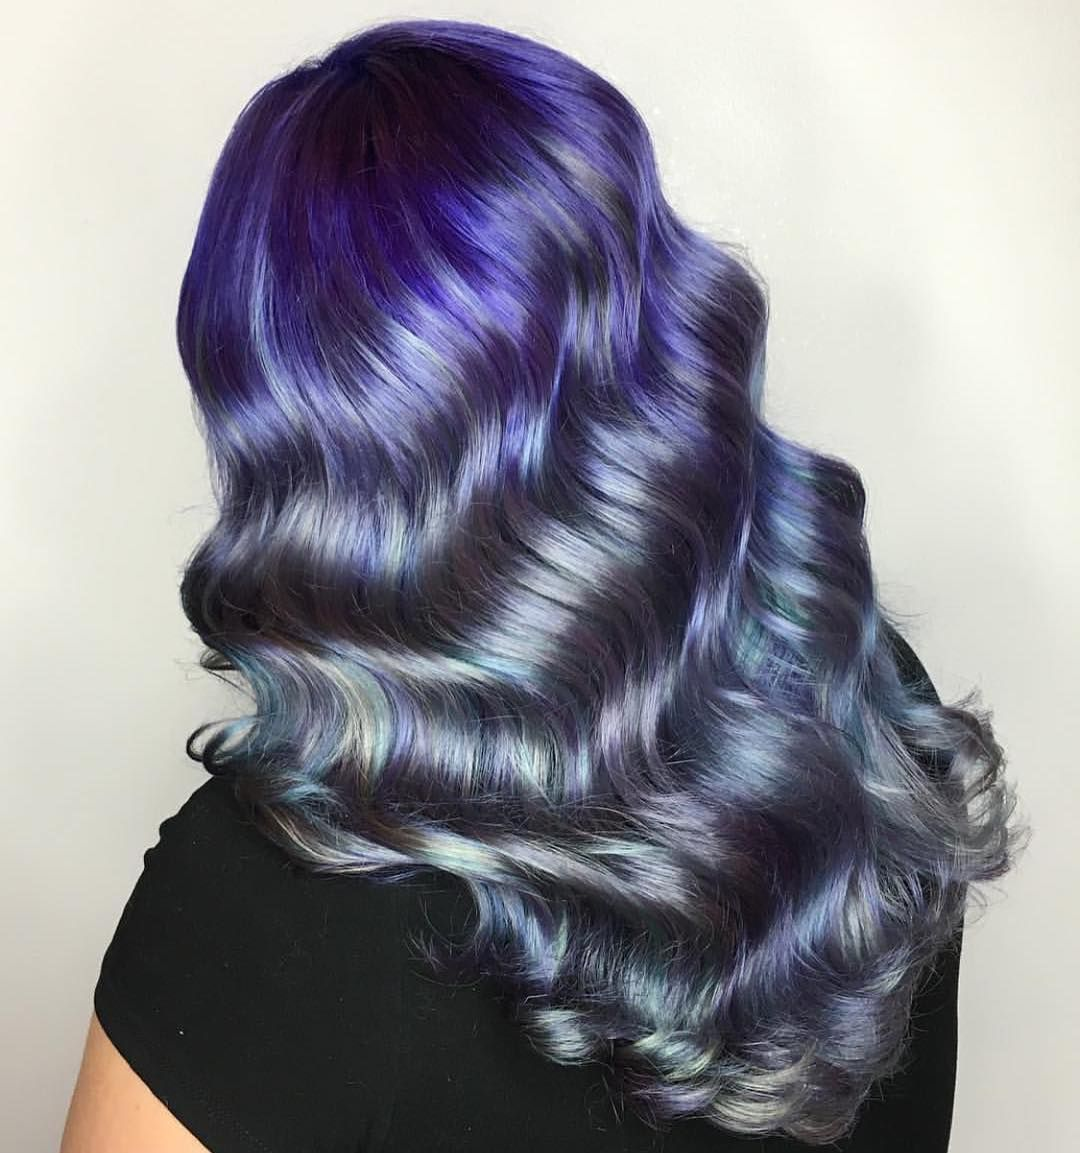 Cool  Cool Ideas for Purple Hair Make it Sexy and Vibrant Check